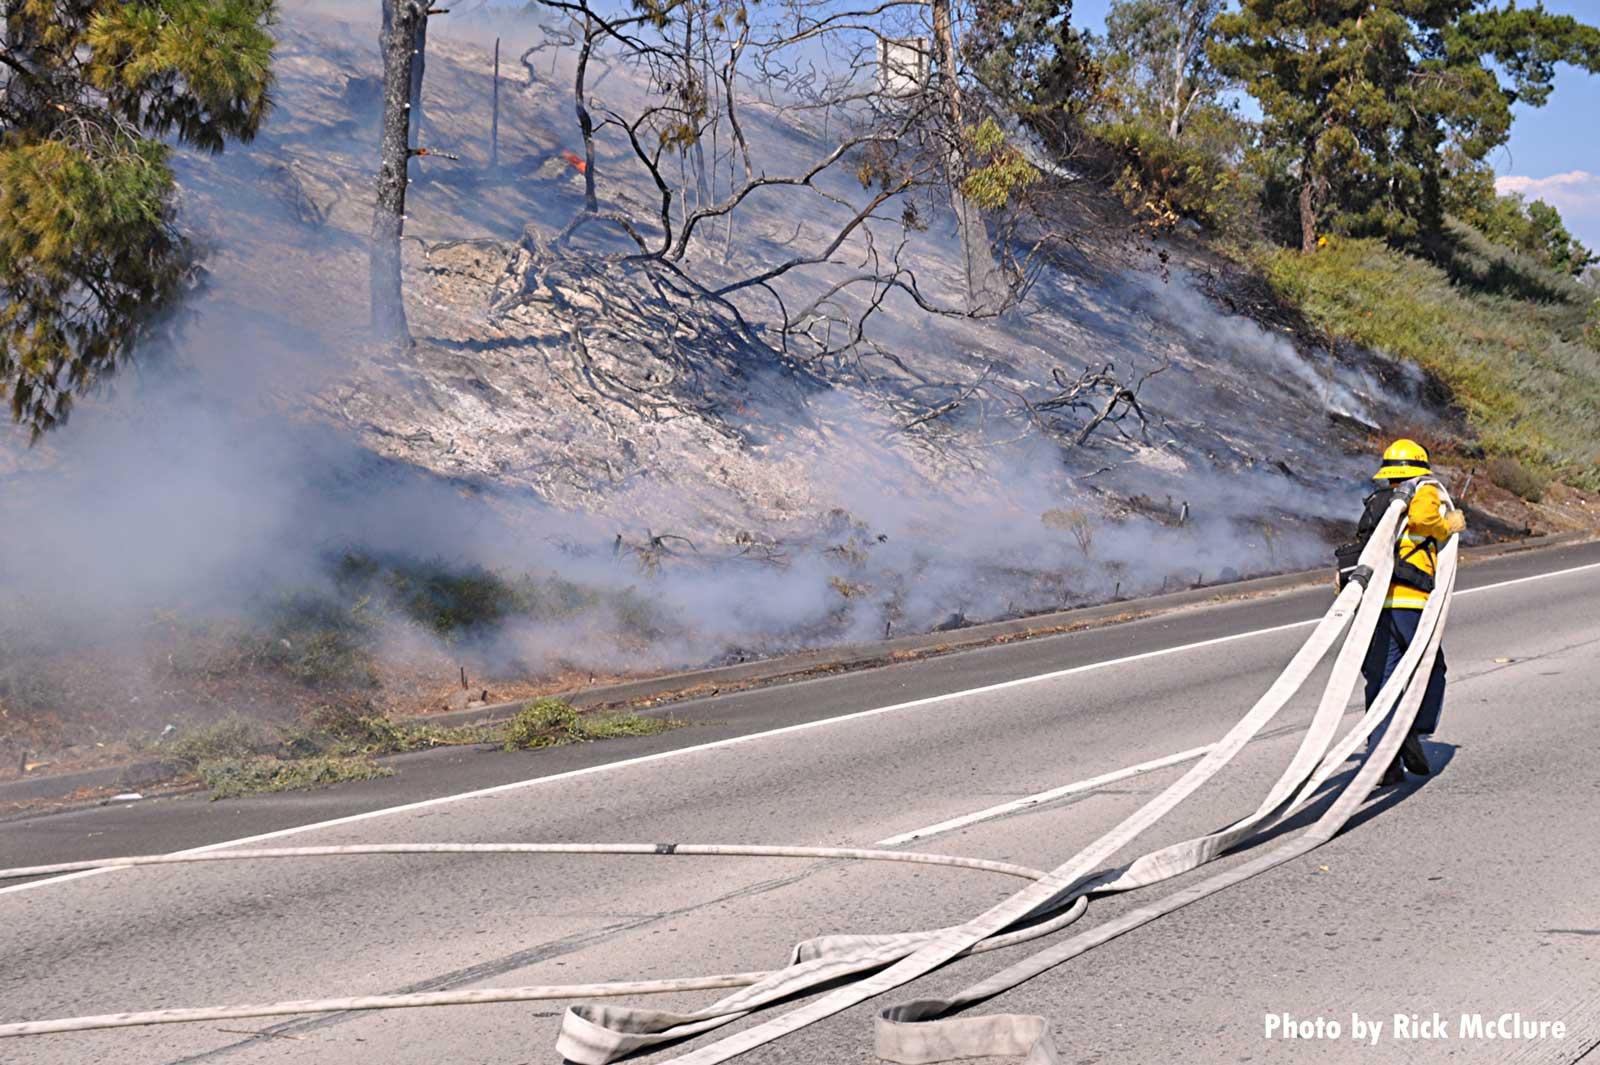 Firefighter stretches out hoseline at brush fire